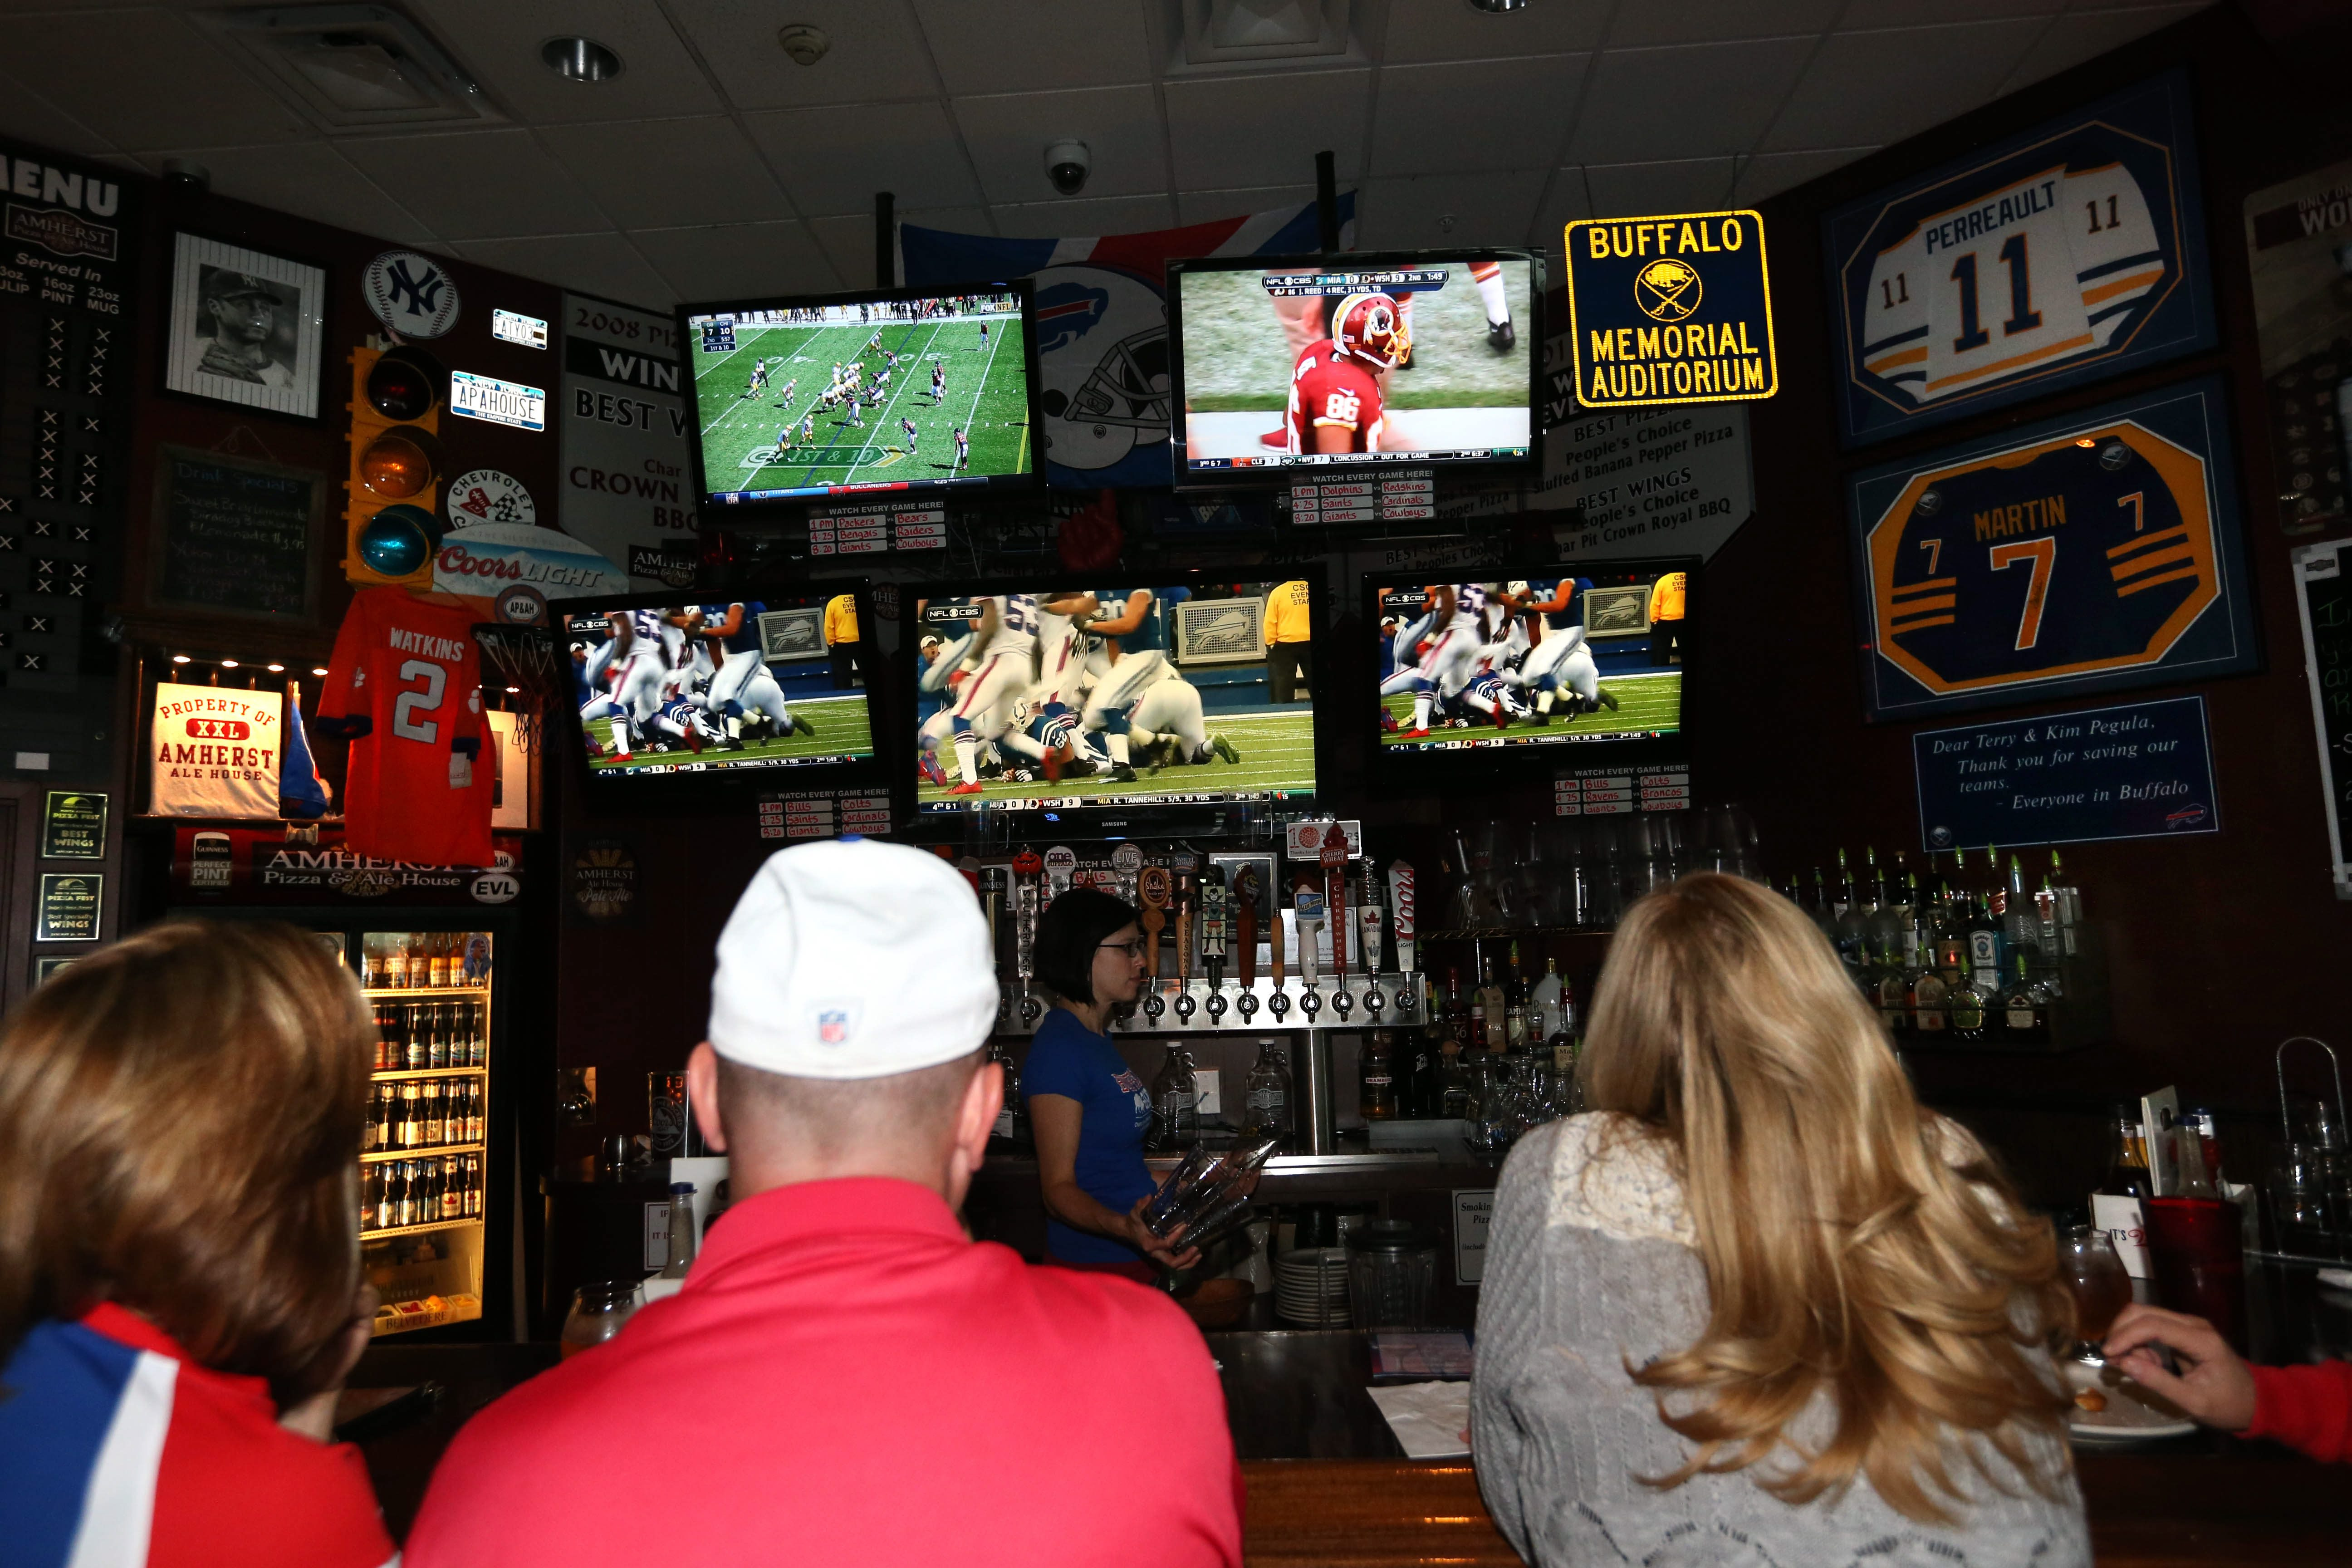 Amherst Pizza & Ale House at 55 Crosspoint in Getzville is a popular spot to watch the Bills game.     (Sharon Cantillon/Buffalo News file photo)